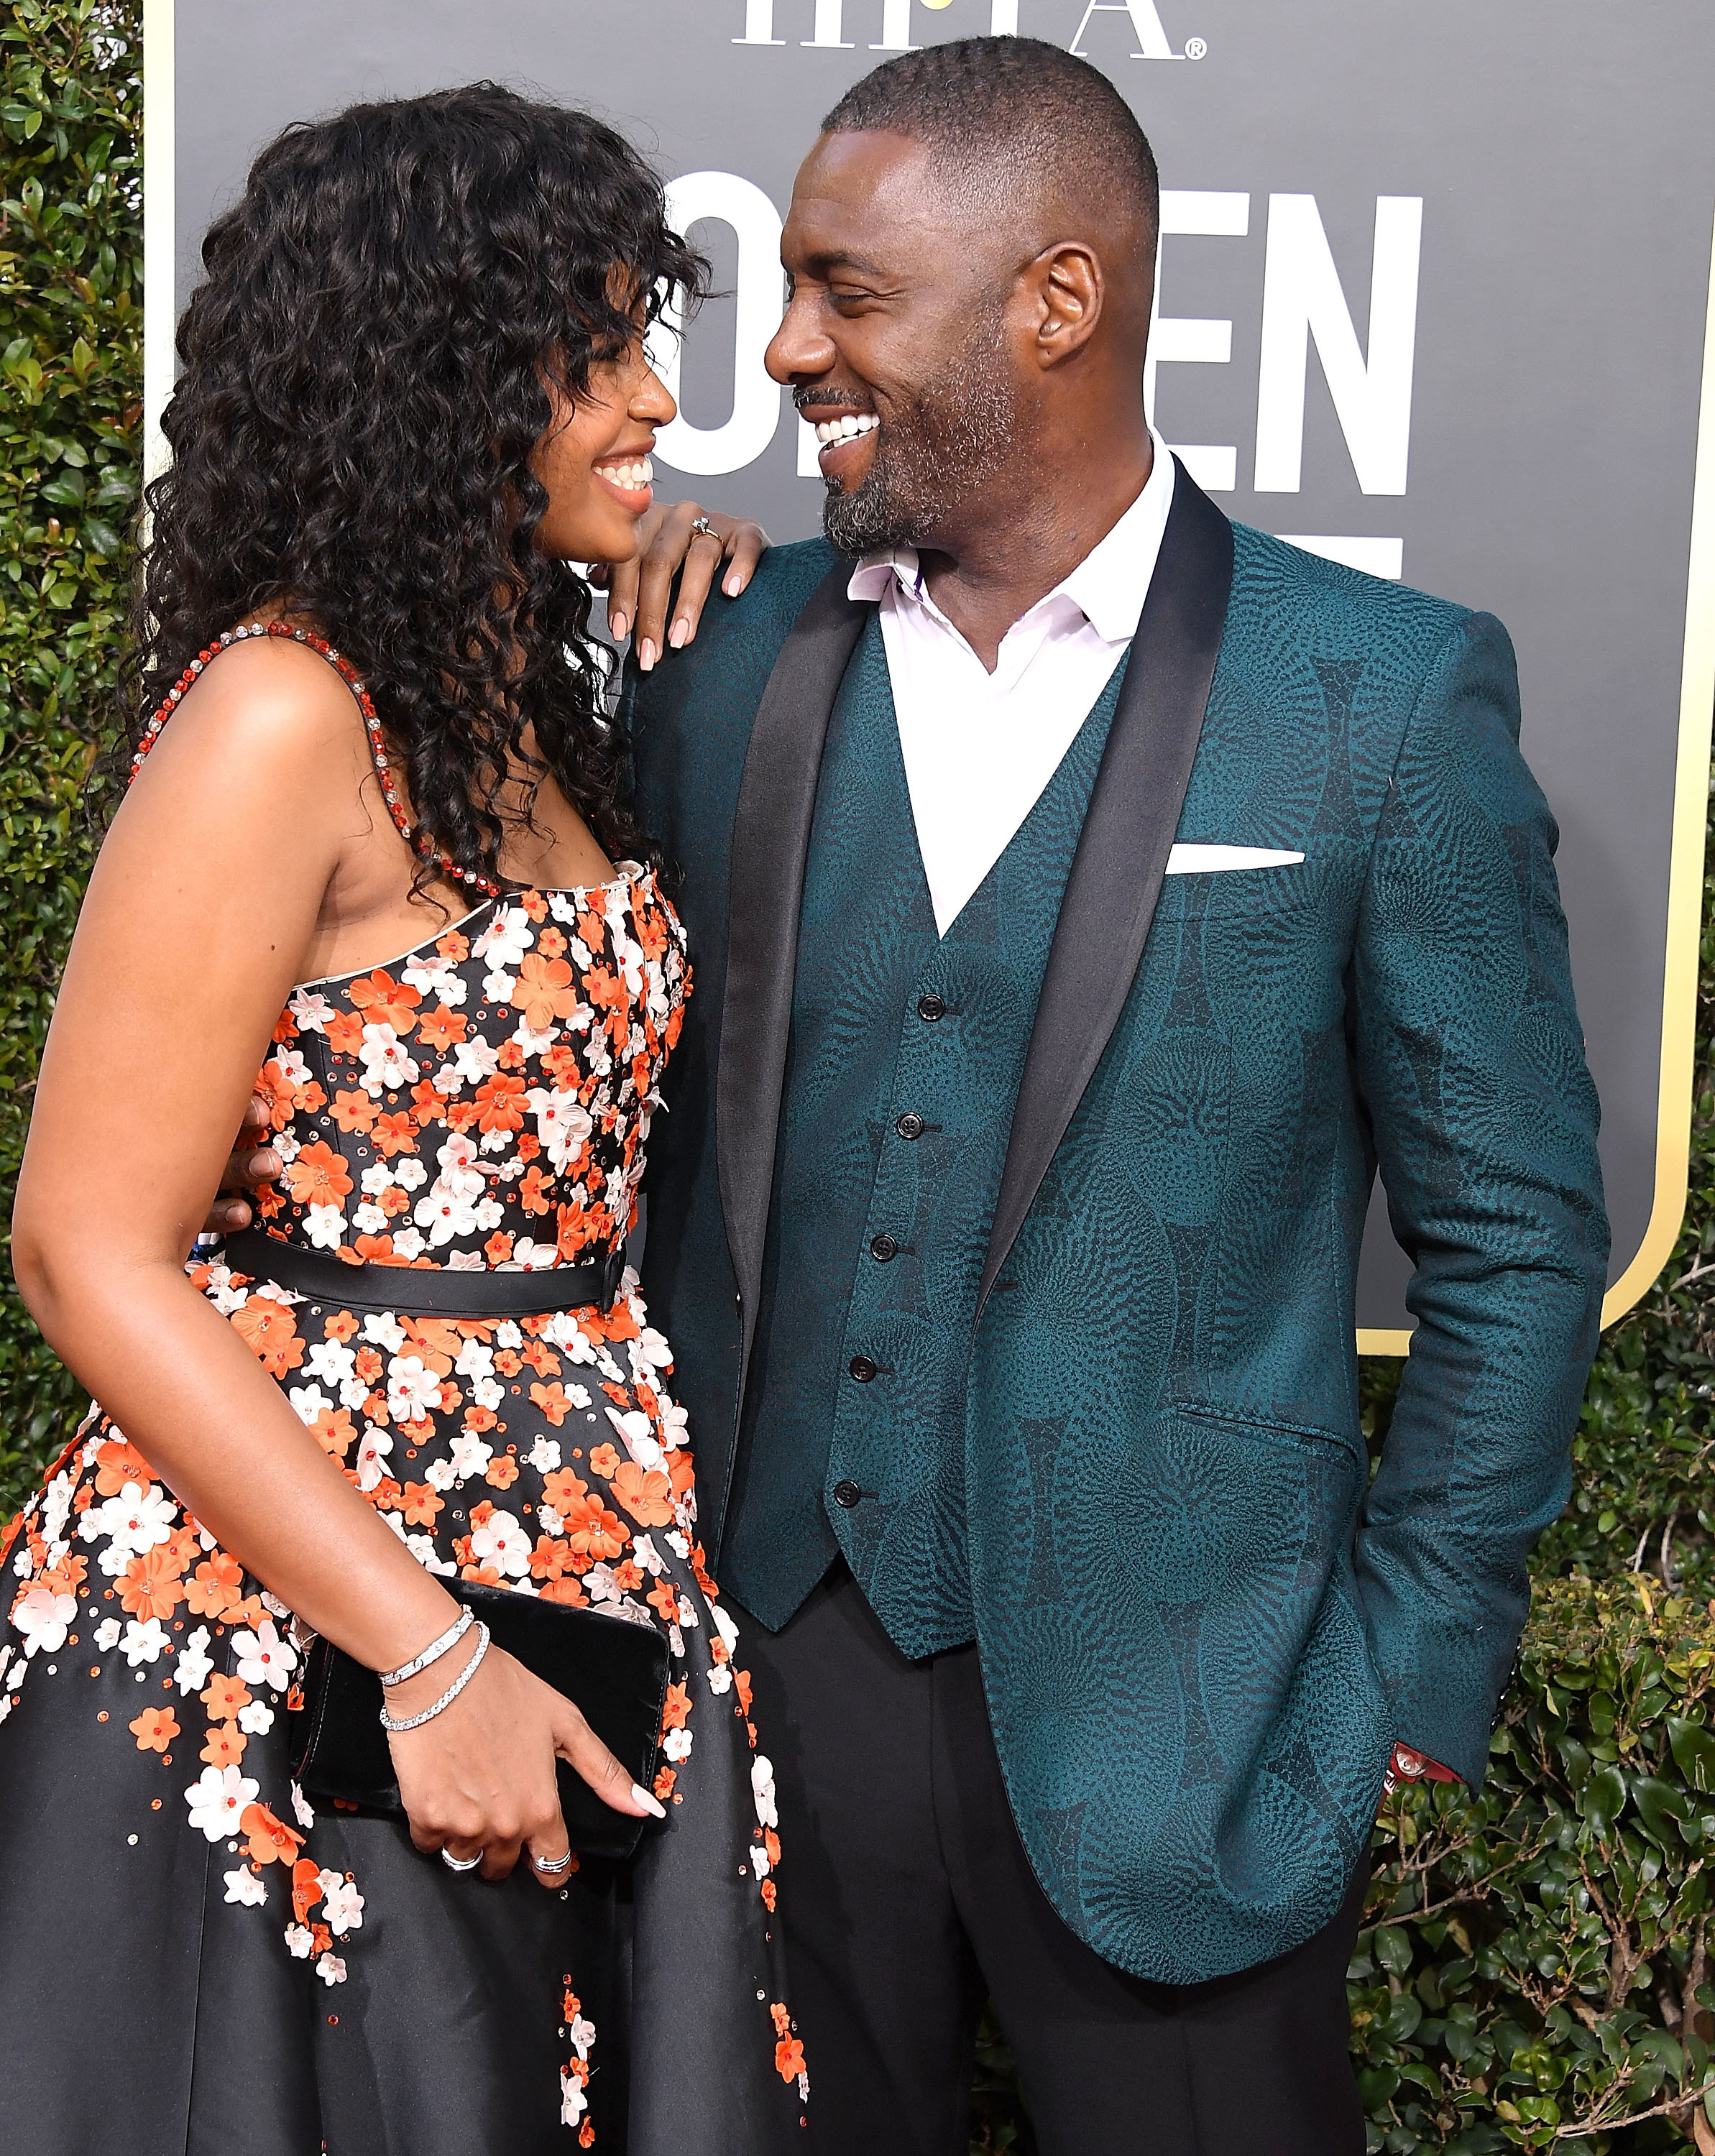 Sabrina and Idris at the 76th Annual Golden Globe Awards in Beverly Hills